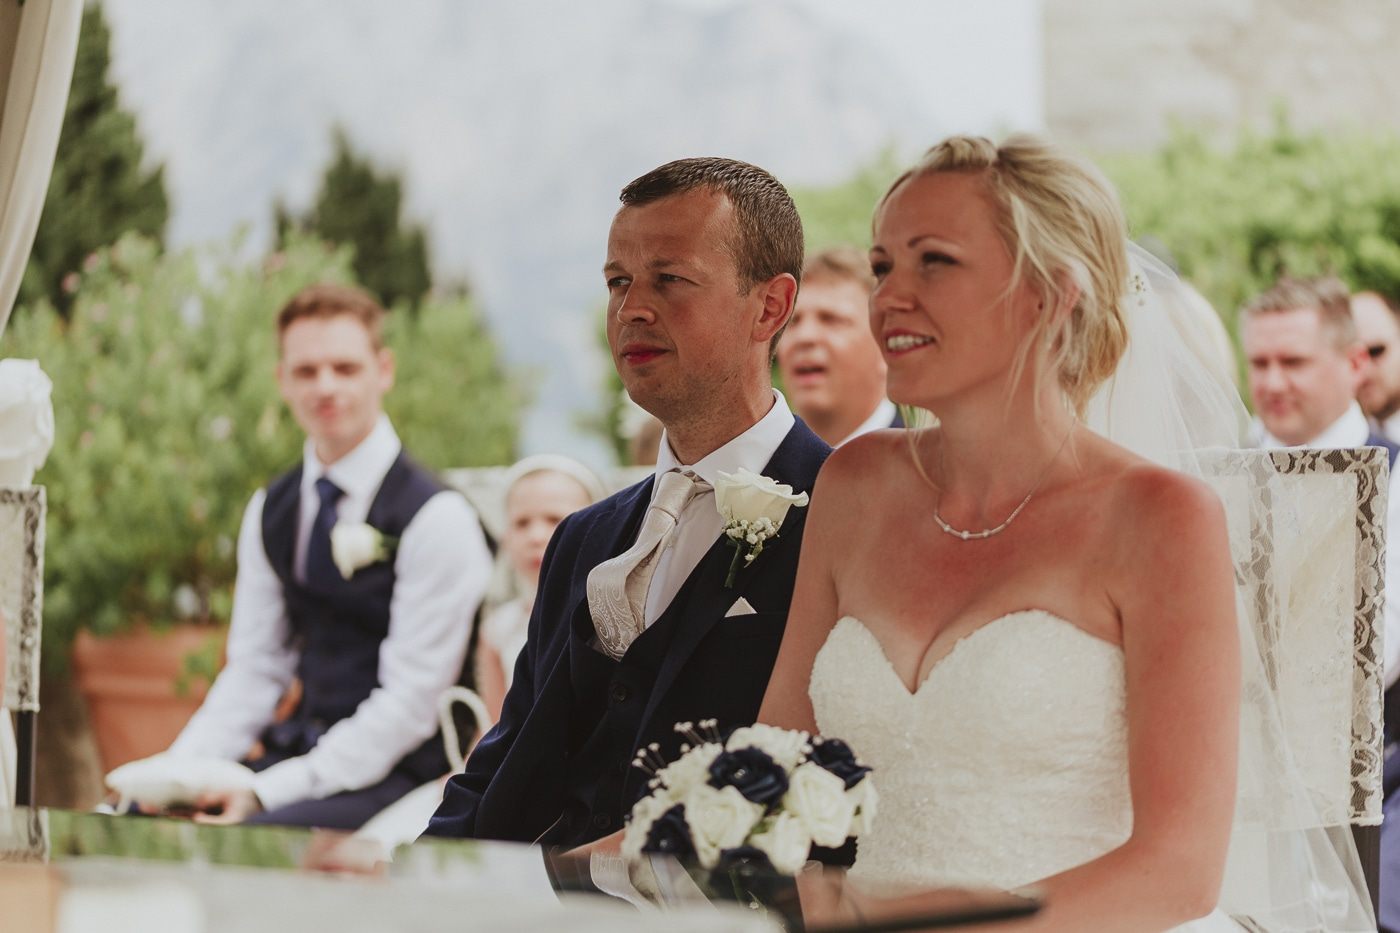 Bride and groom smiling with flowers on her lap during the wedding vows by Joshua Wyborn